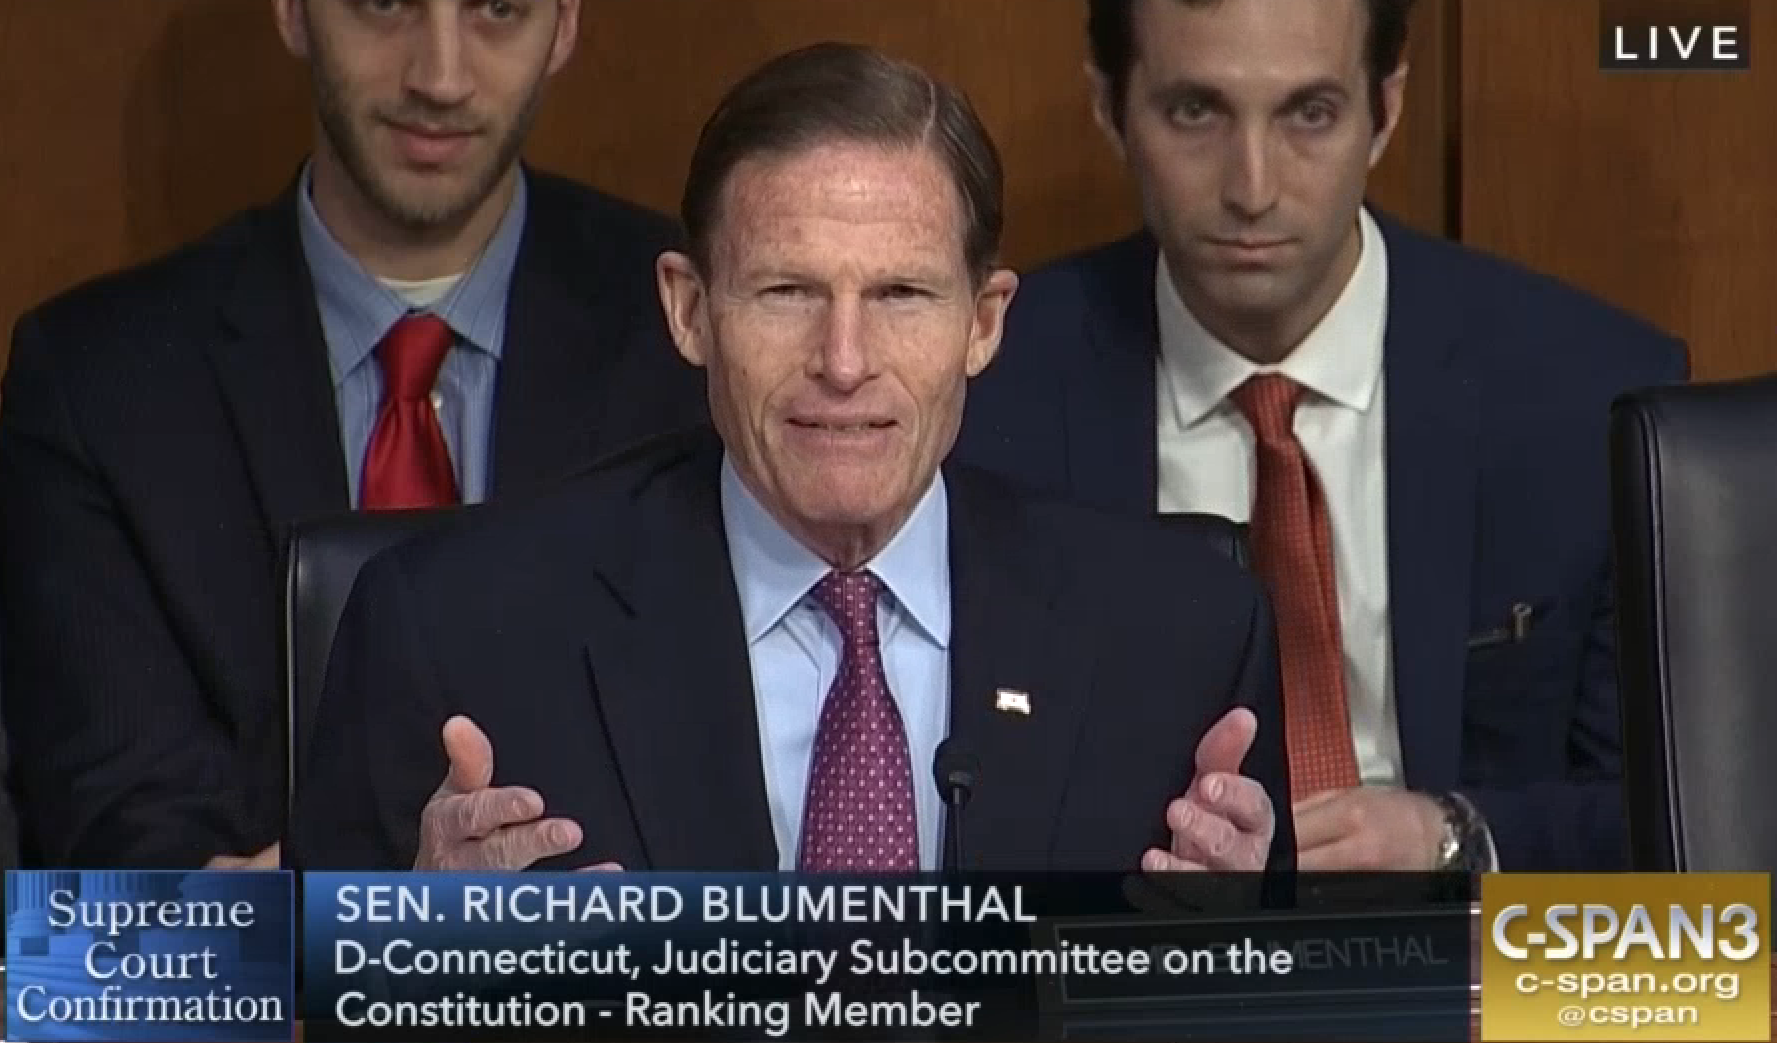 Blumenthal presses Gorsuch on key cases, but judge won't be pinned down